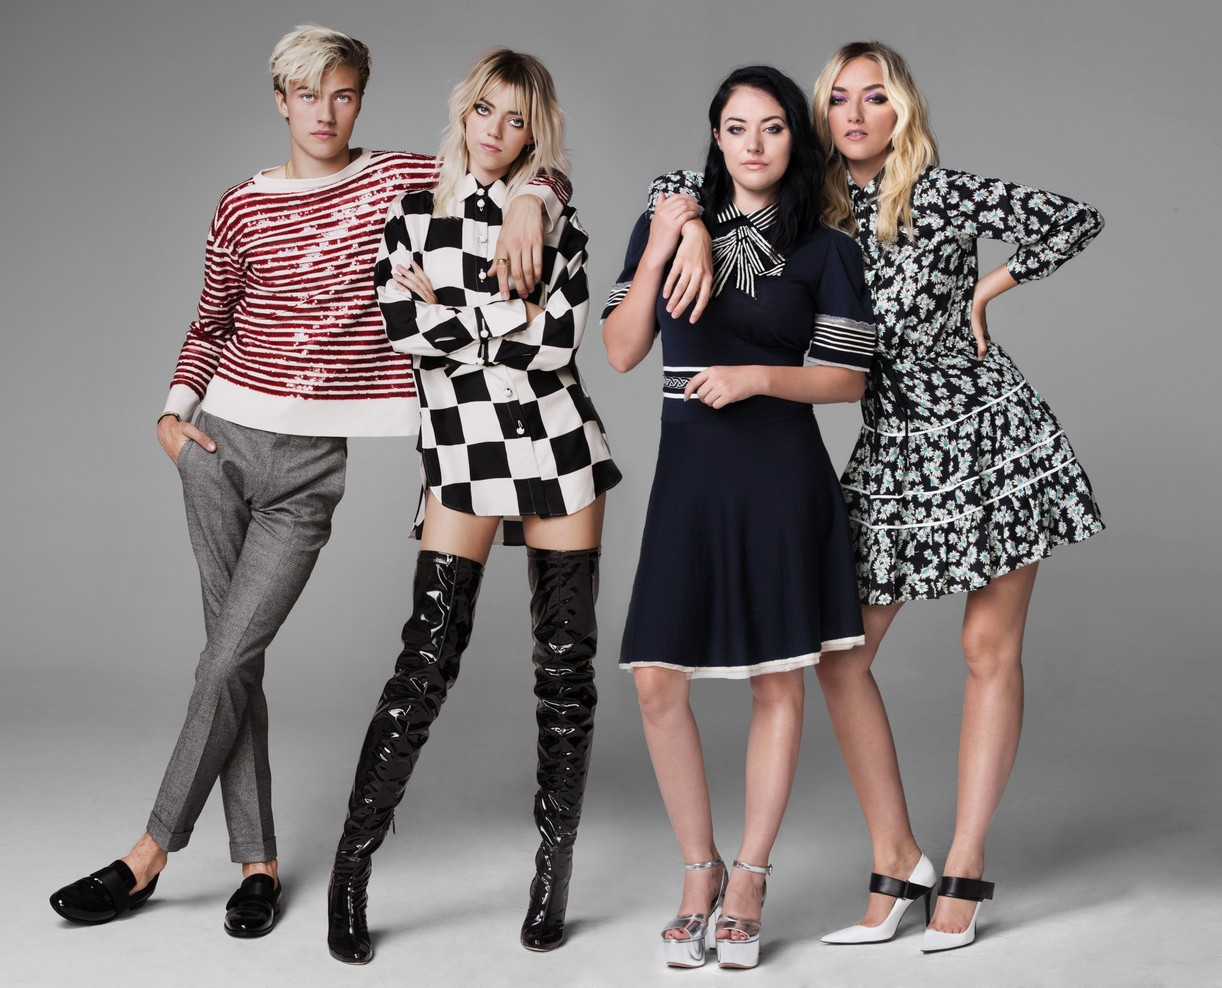 The four siblings of The Atomics pose for a group portrait